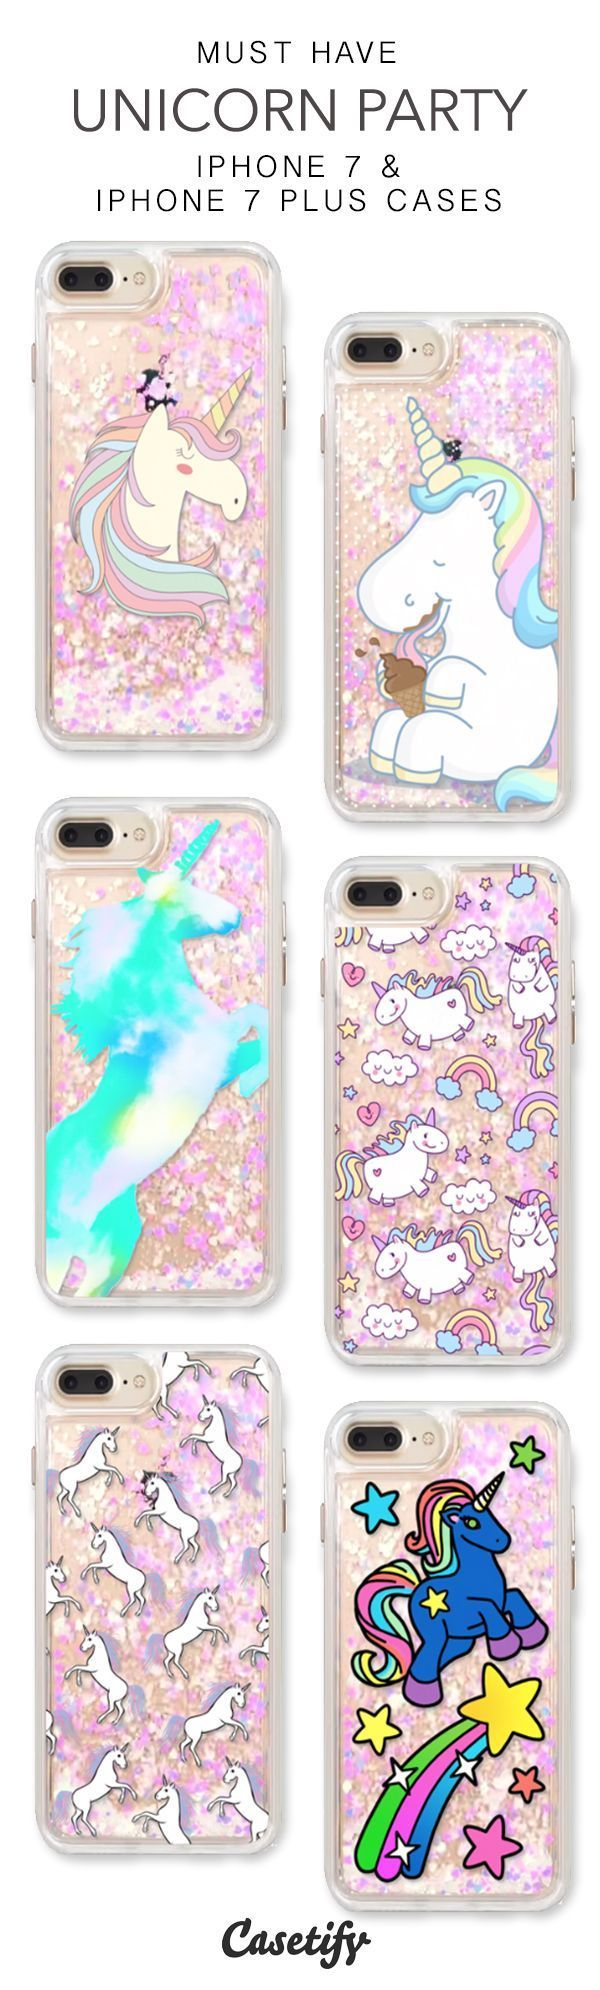 Must Have Unicorn Party iPhone 7 Cases & iPhone 7 Plus Cases. More protective liquid glitter iPhone case here > https://www.casetify.com/en_US/collections/iphone-7-glitter-cases#/?vc=USN8VMeama #Iphone #iphone7case,